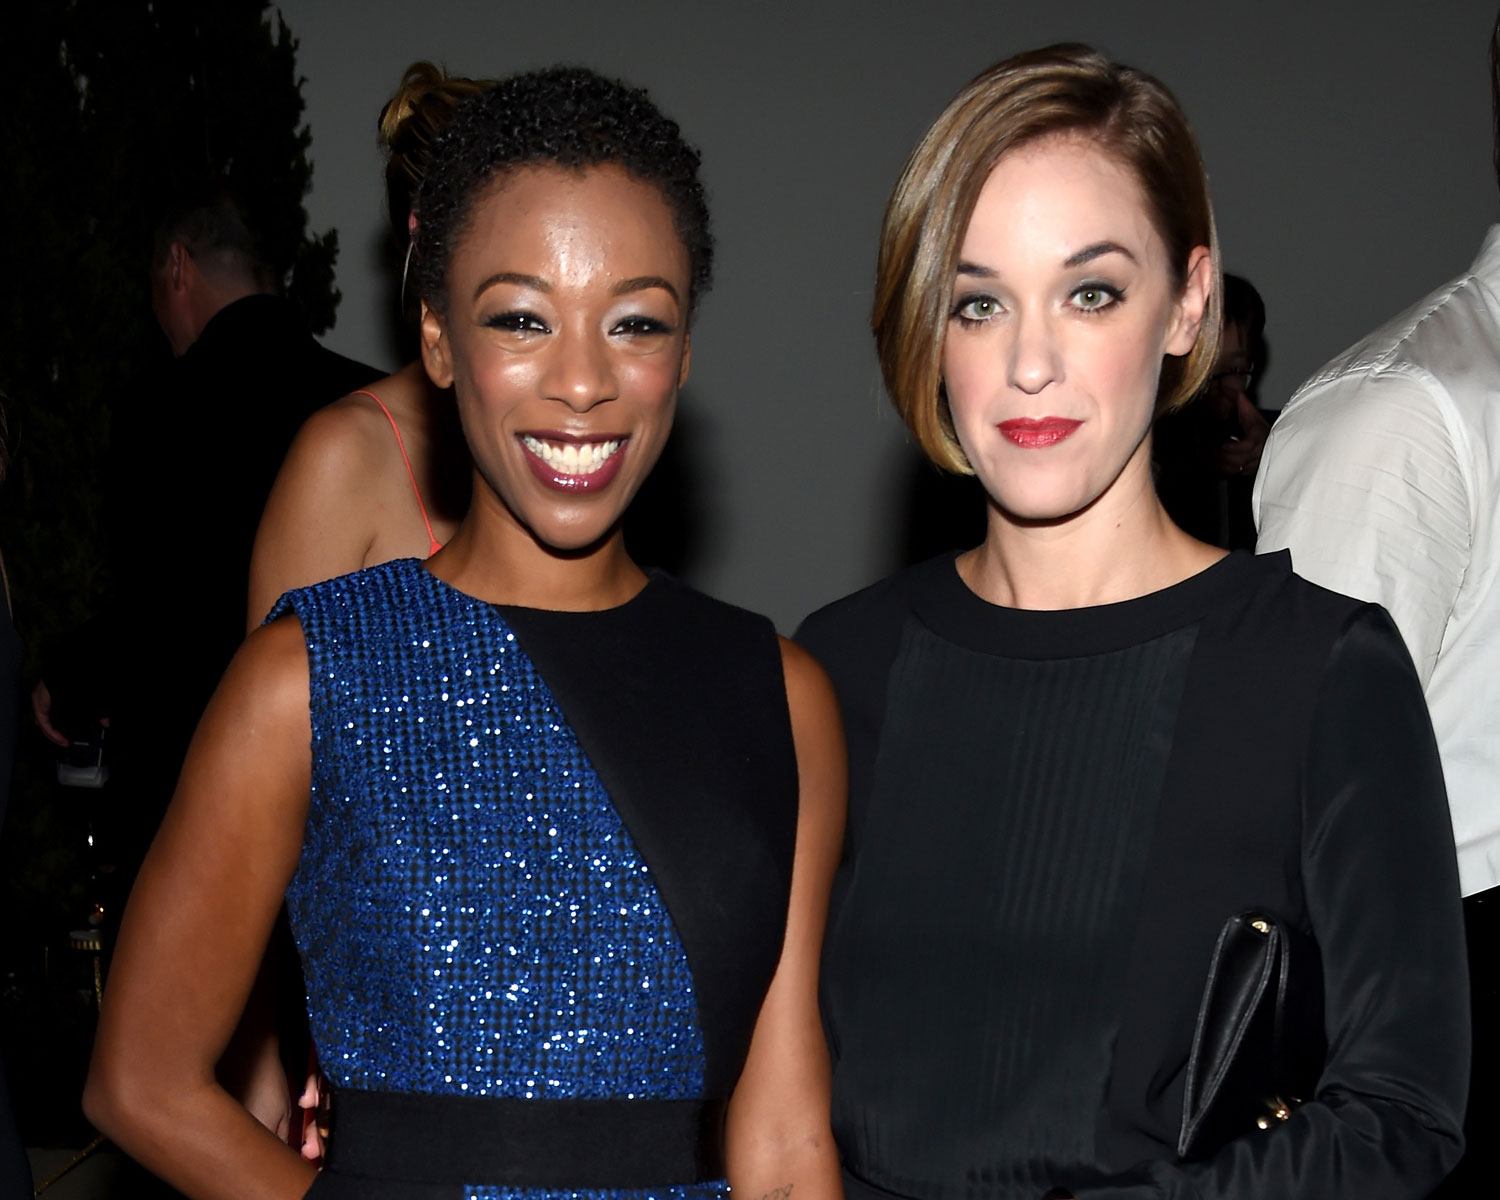 OITNB's Samira Wiley Is Engaged To Lauren Morelli